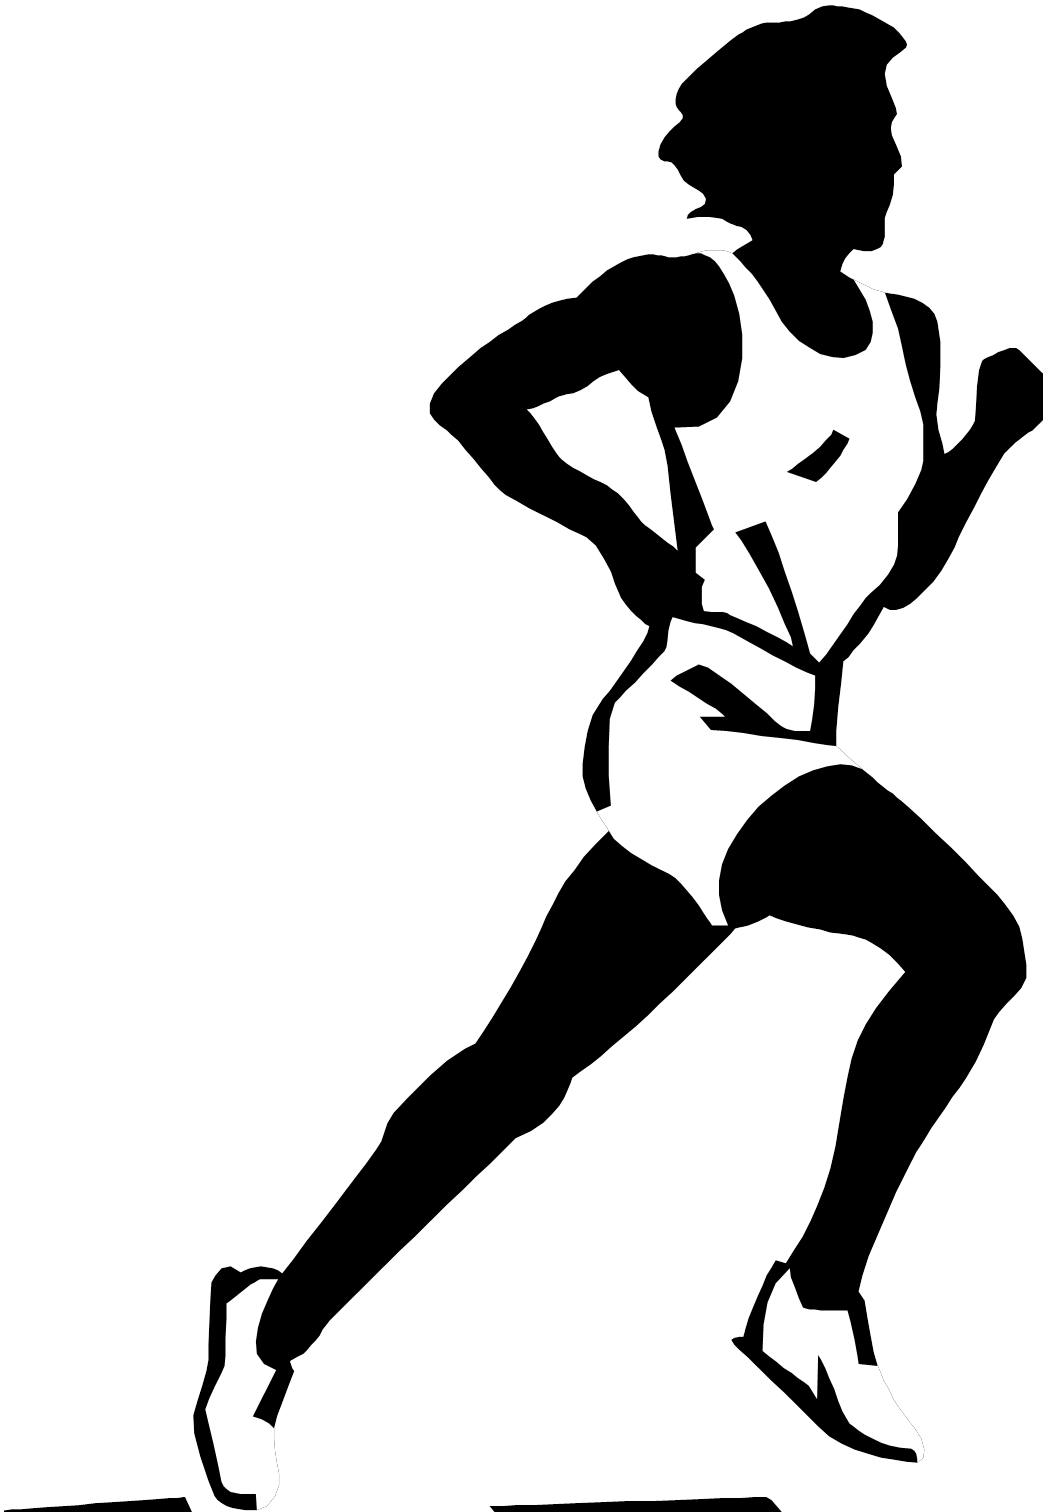 Images for cross country. Gym clipart athlete